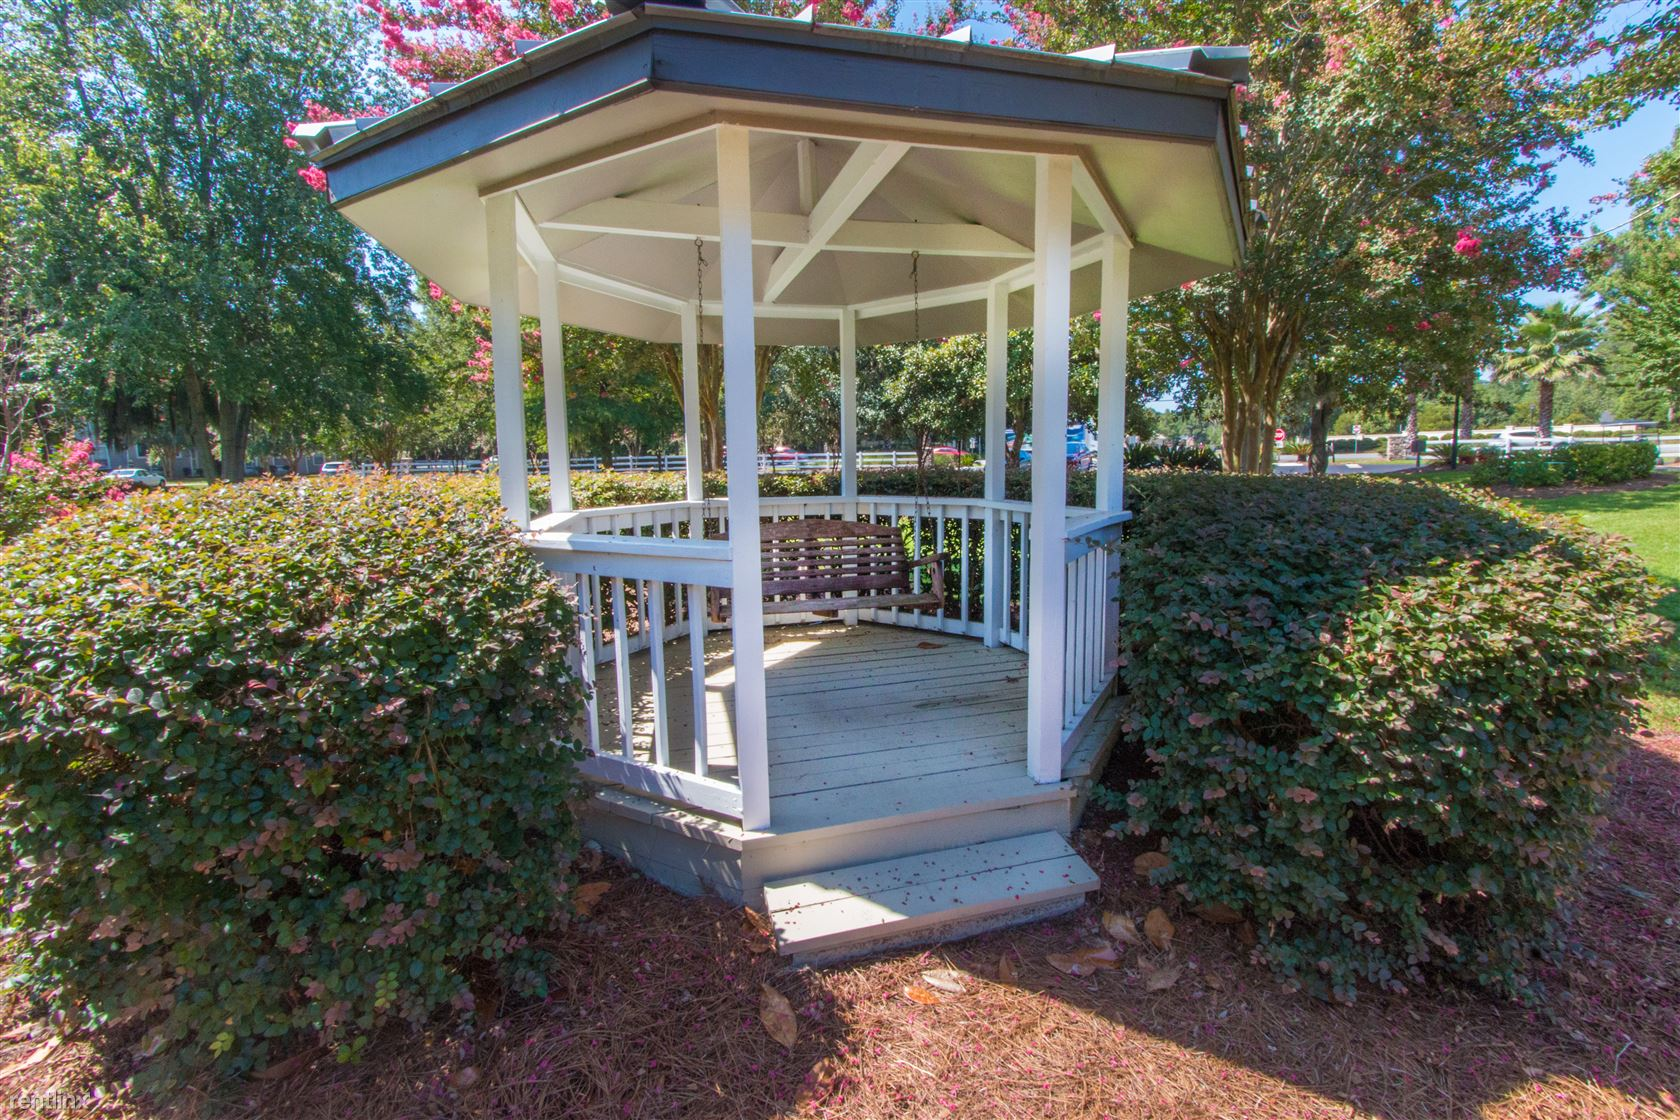 Viera at Whitemarsh Gazebo